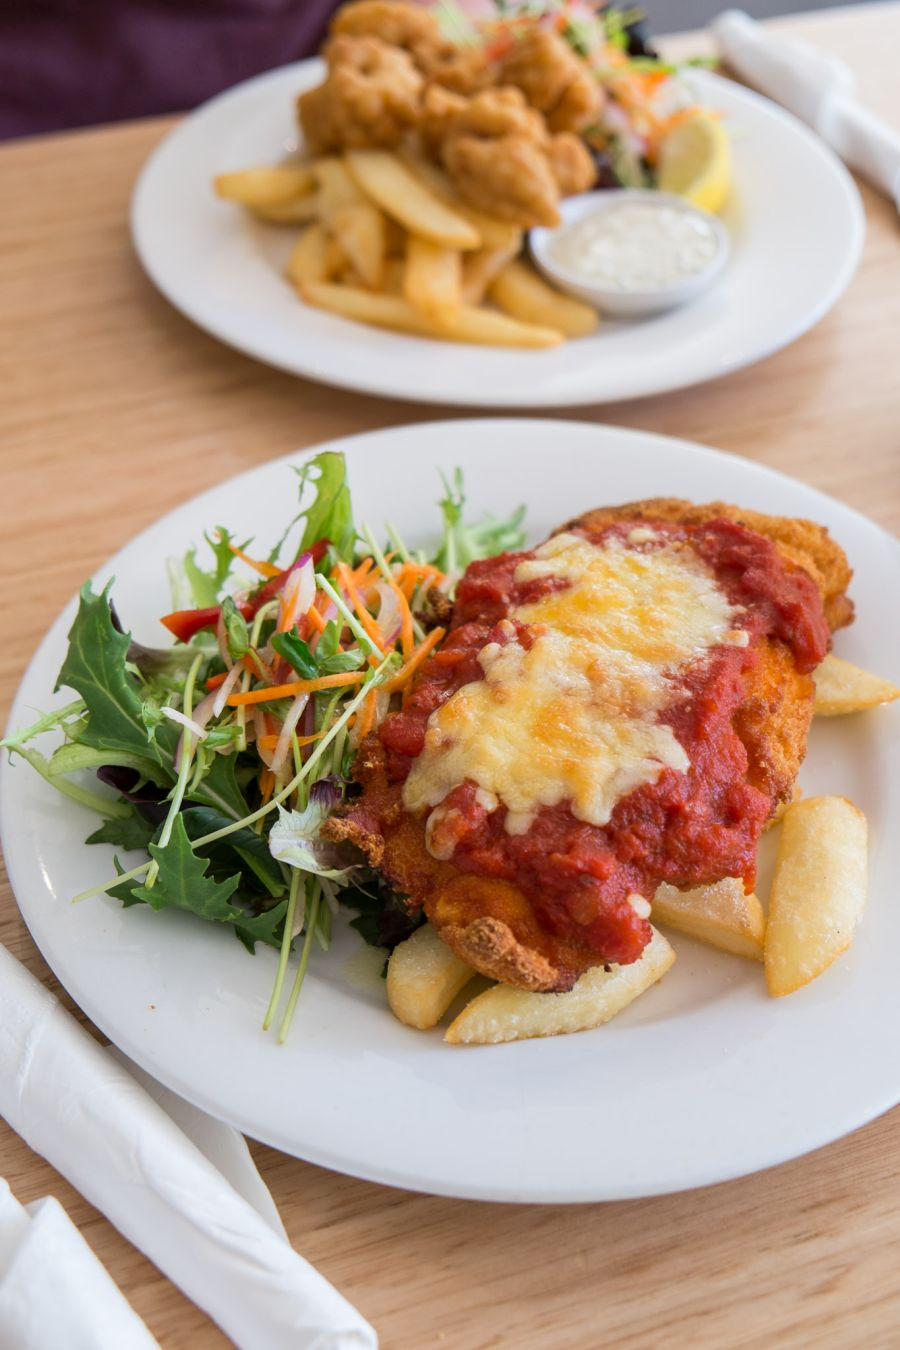 Chicken parmigiana with chunky chips and salad (AU$15 - tour menu)